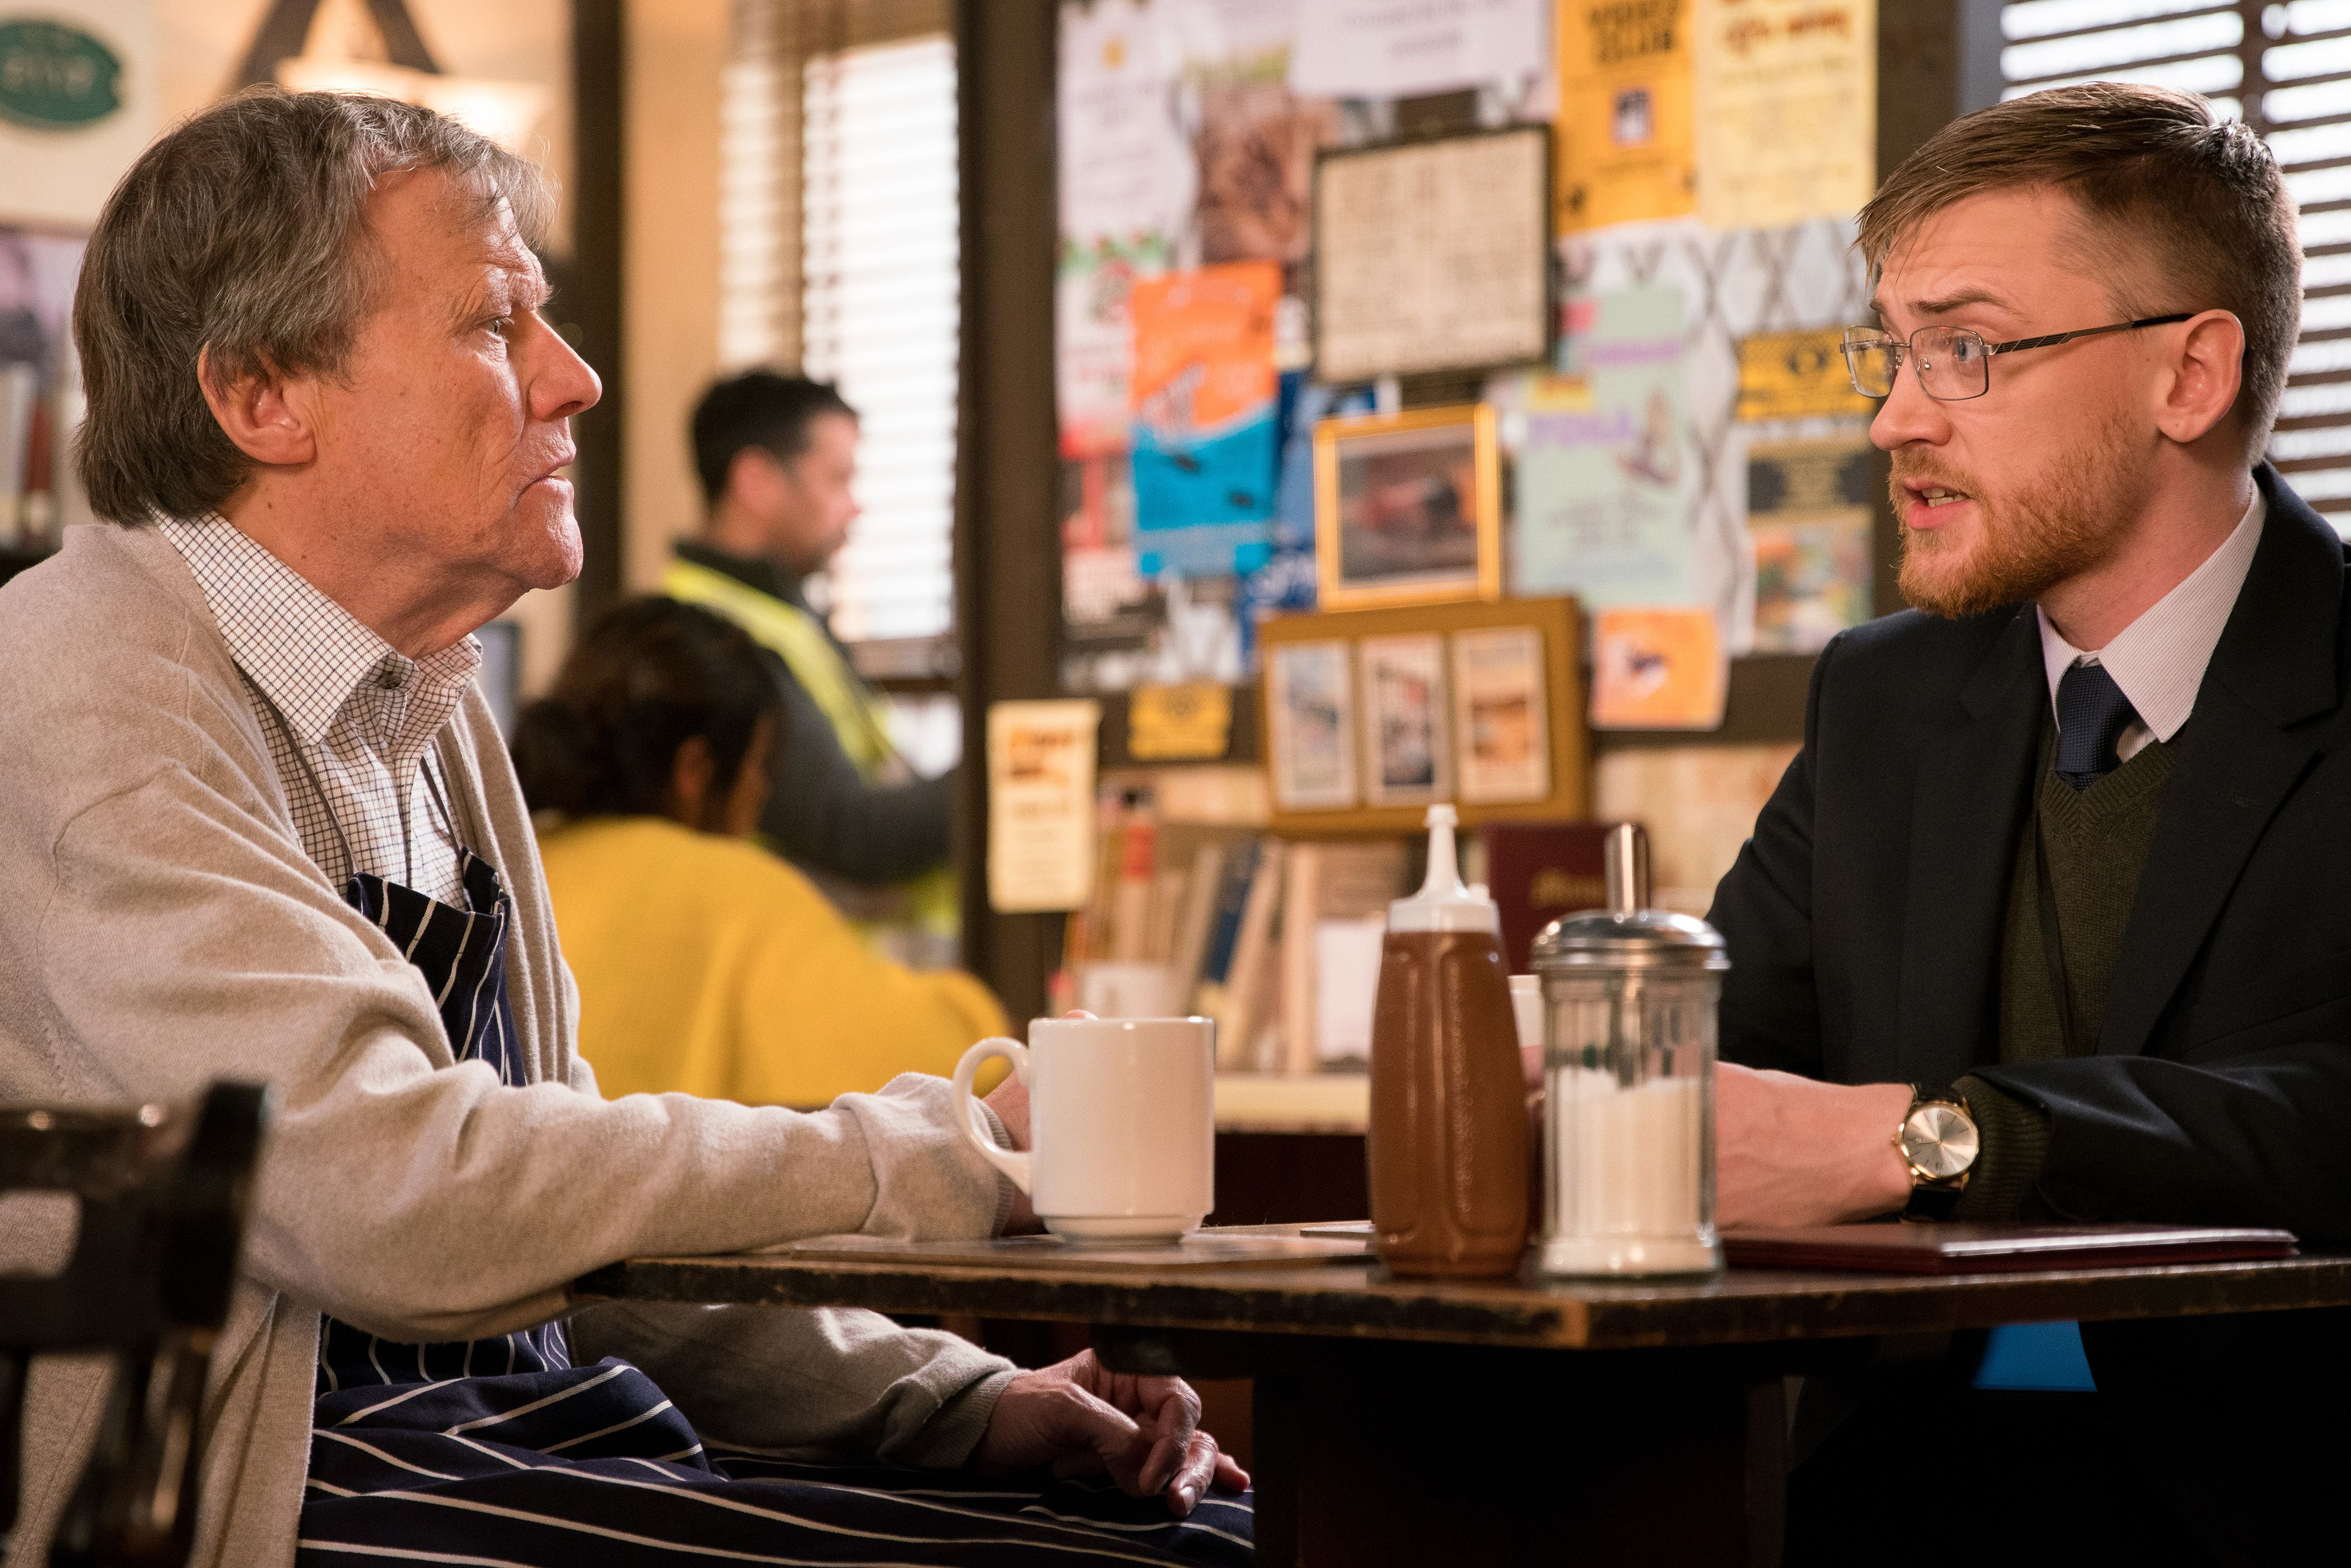 Roy Cropper catches up with Wayne Hayes in Coronation Street